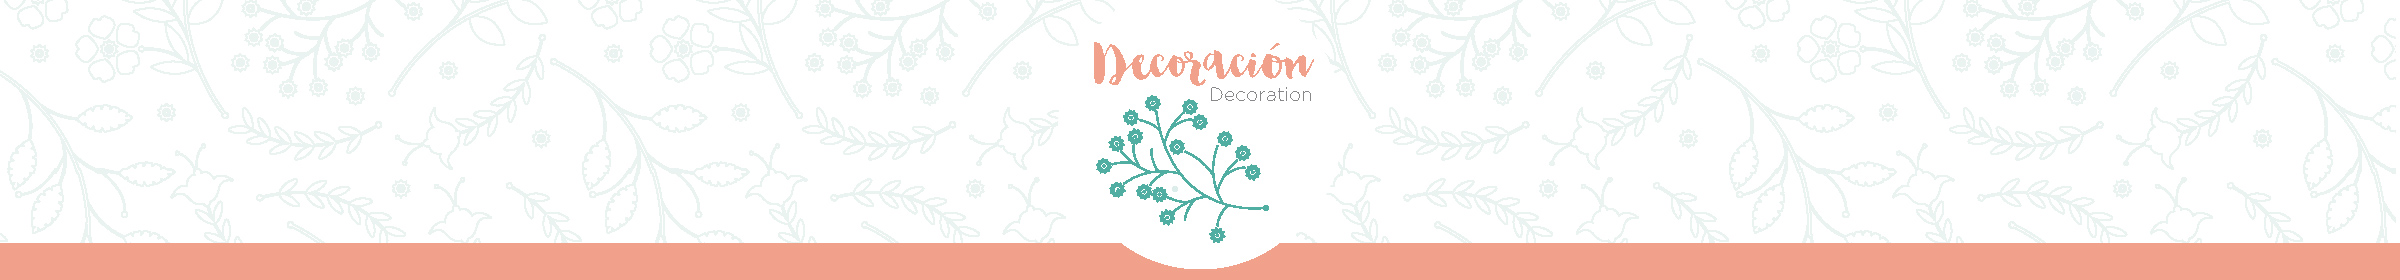 slider decoracion